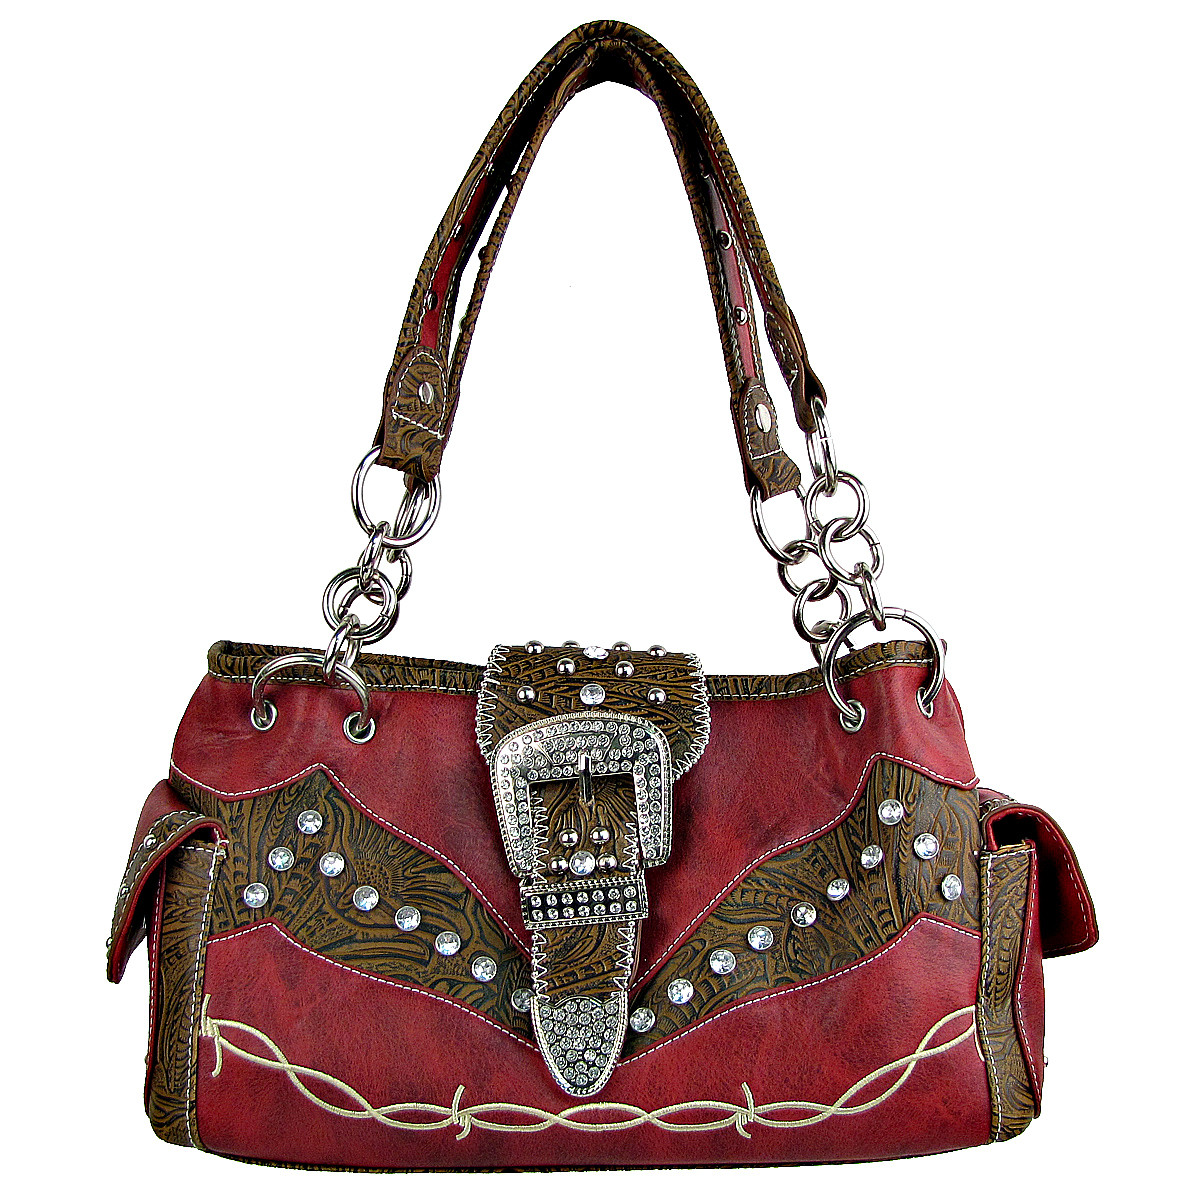 RED TOOLED RHINESTONE BUCKLE LOOK WESTERN SHOULDER HANDBAG HB1-C1009RED